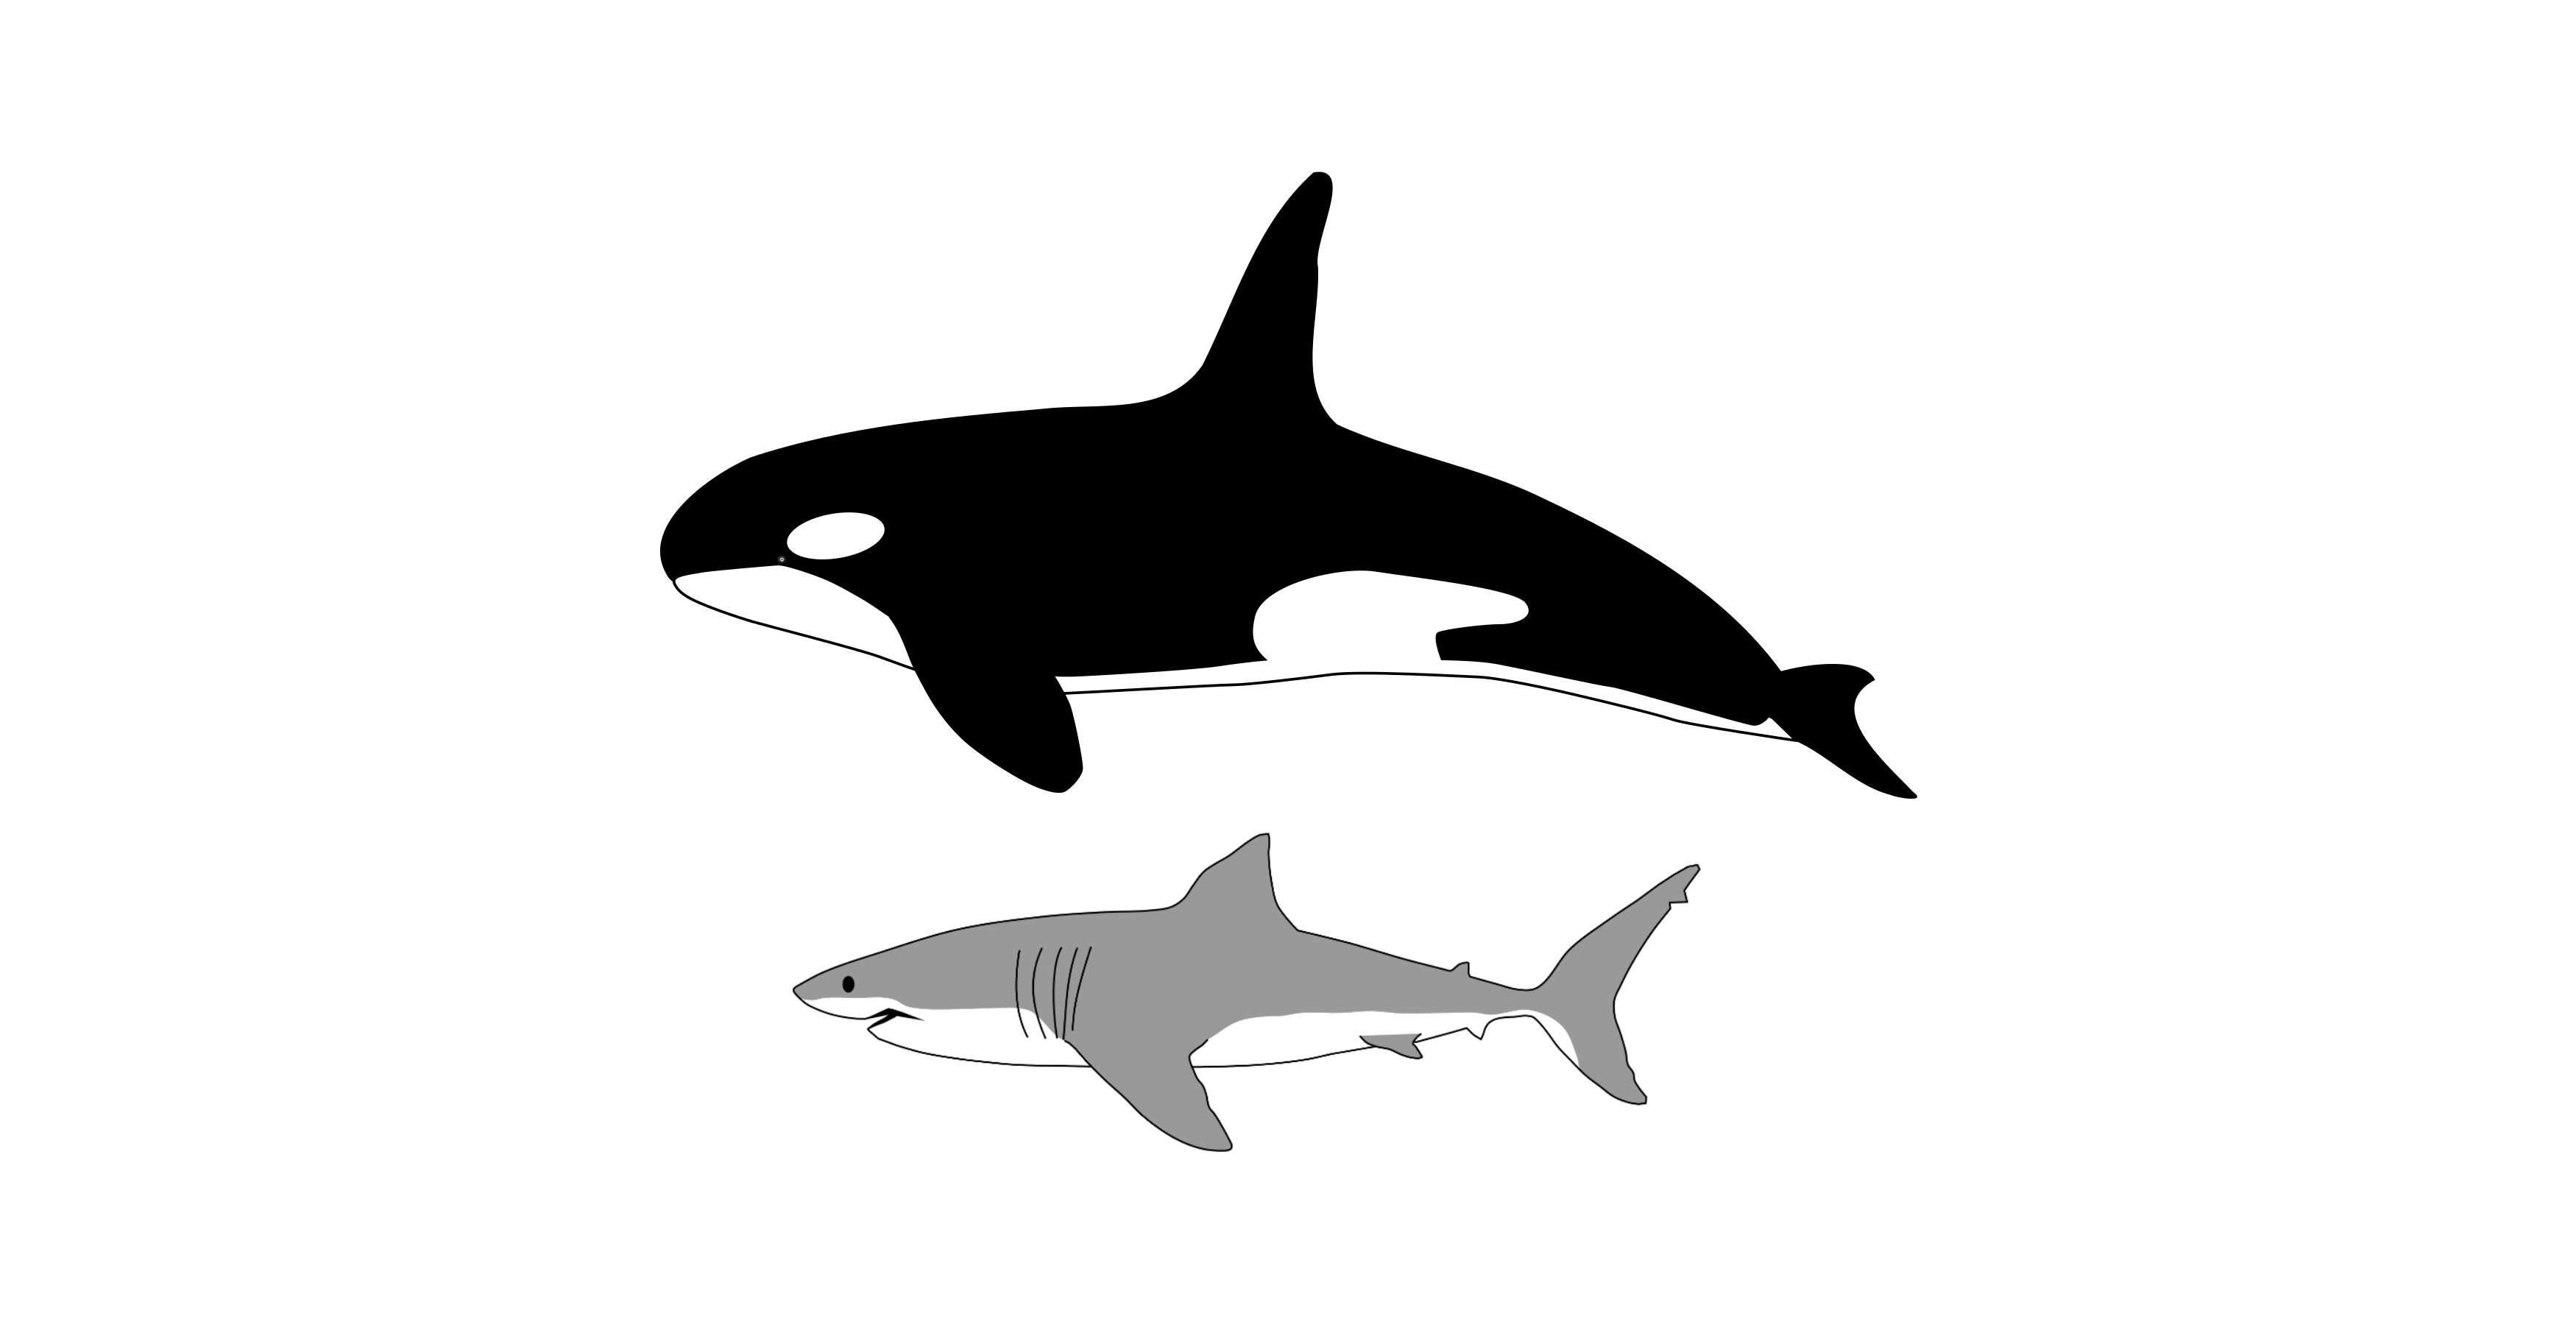 File:Comparison of size of orca and great white shark.png.